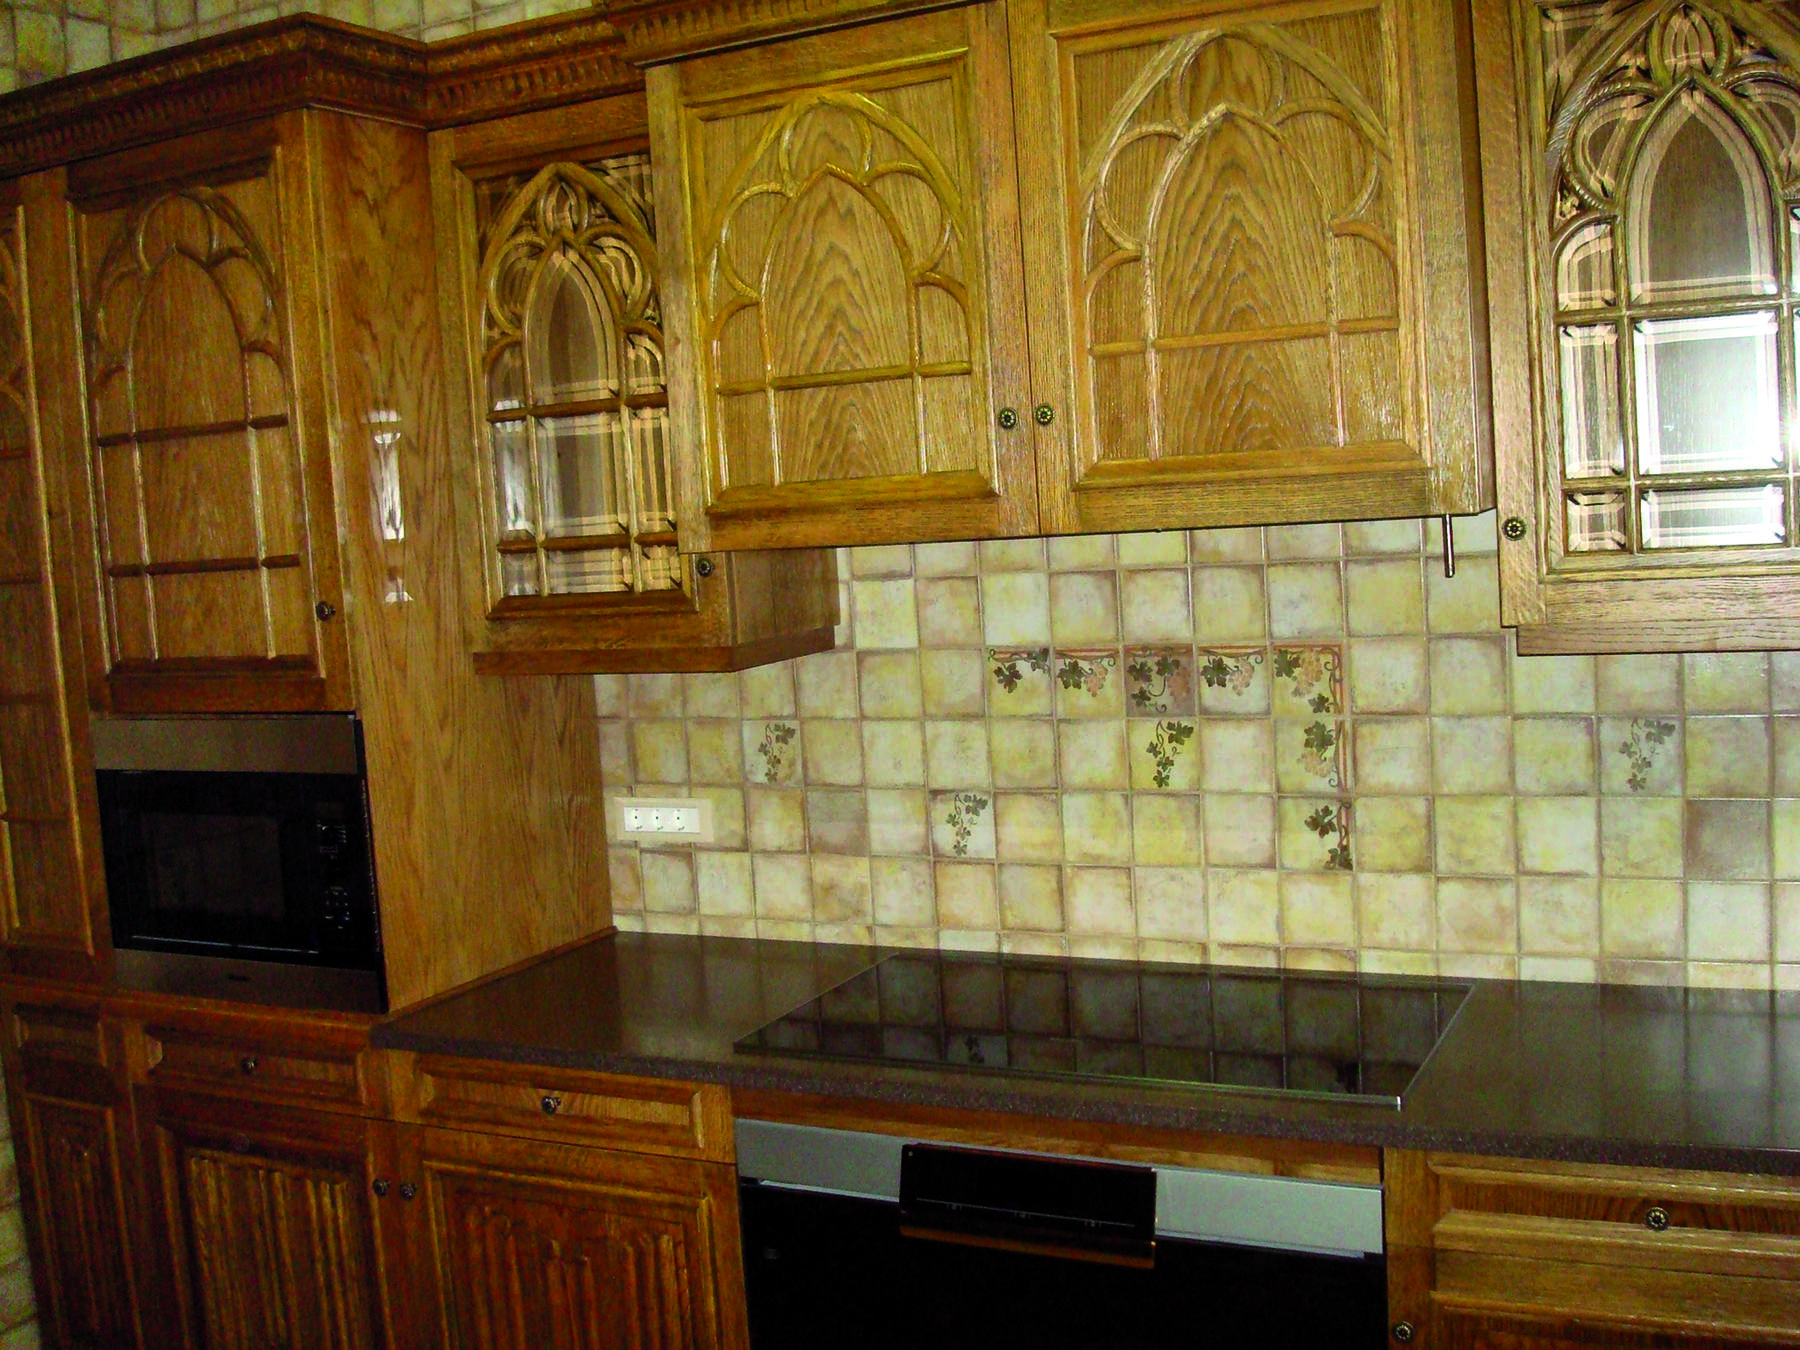 GOTHIC KITCHEN copia-1 GOTHIC KITCHEN 4 ... & Gothic Kitchen For Presidential Dacia | Camerin